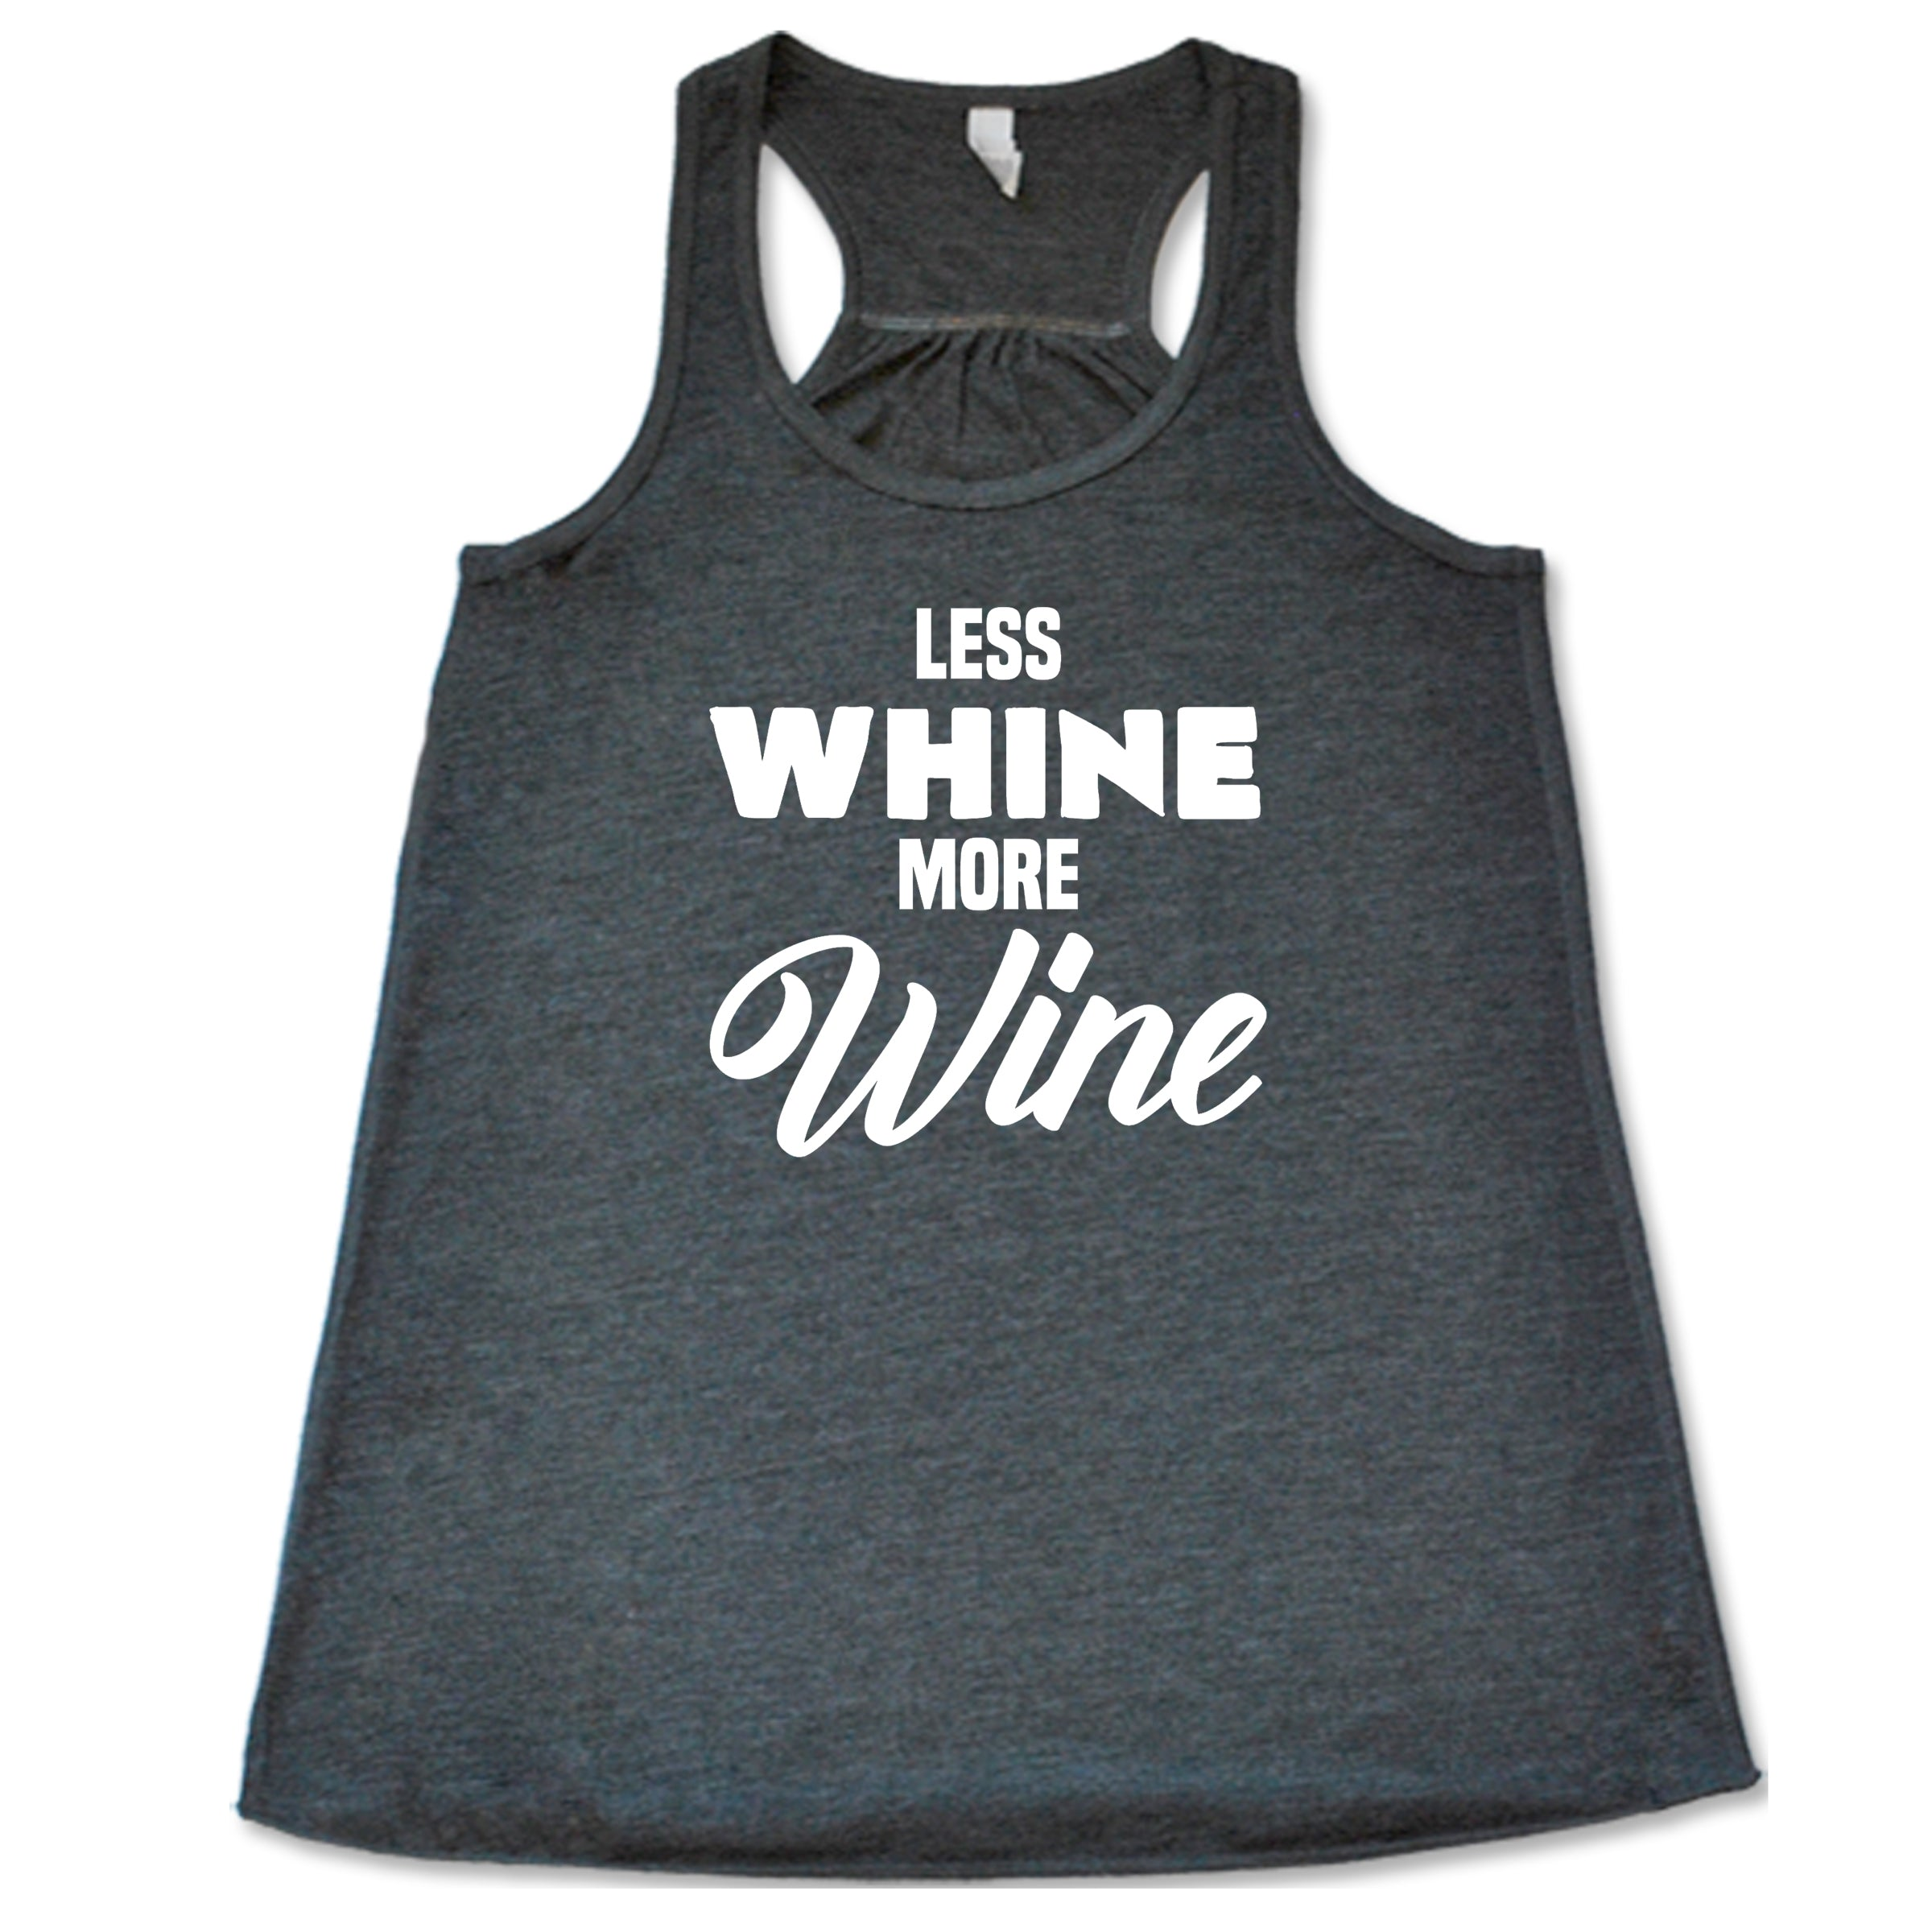 Less Whine More Wine Shirt